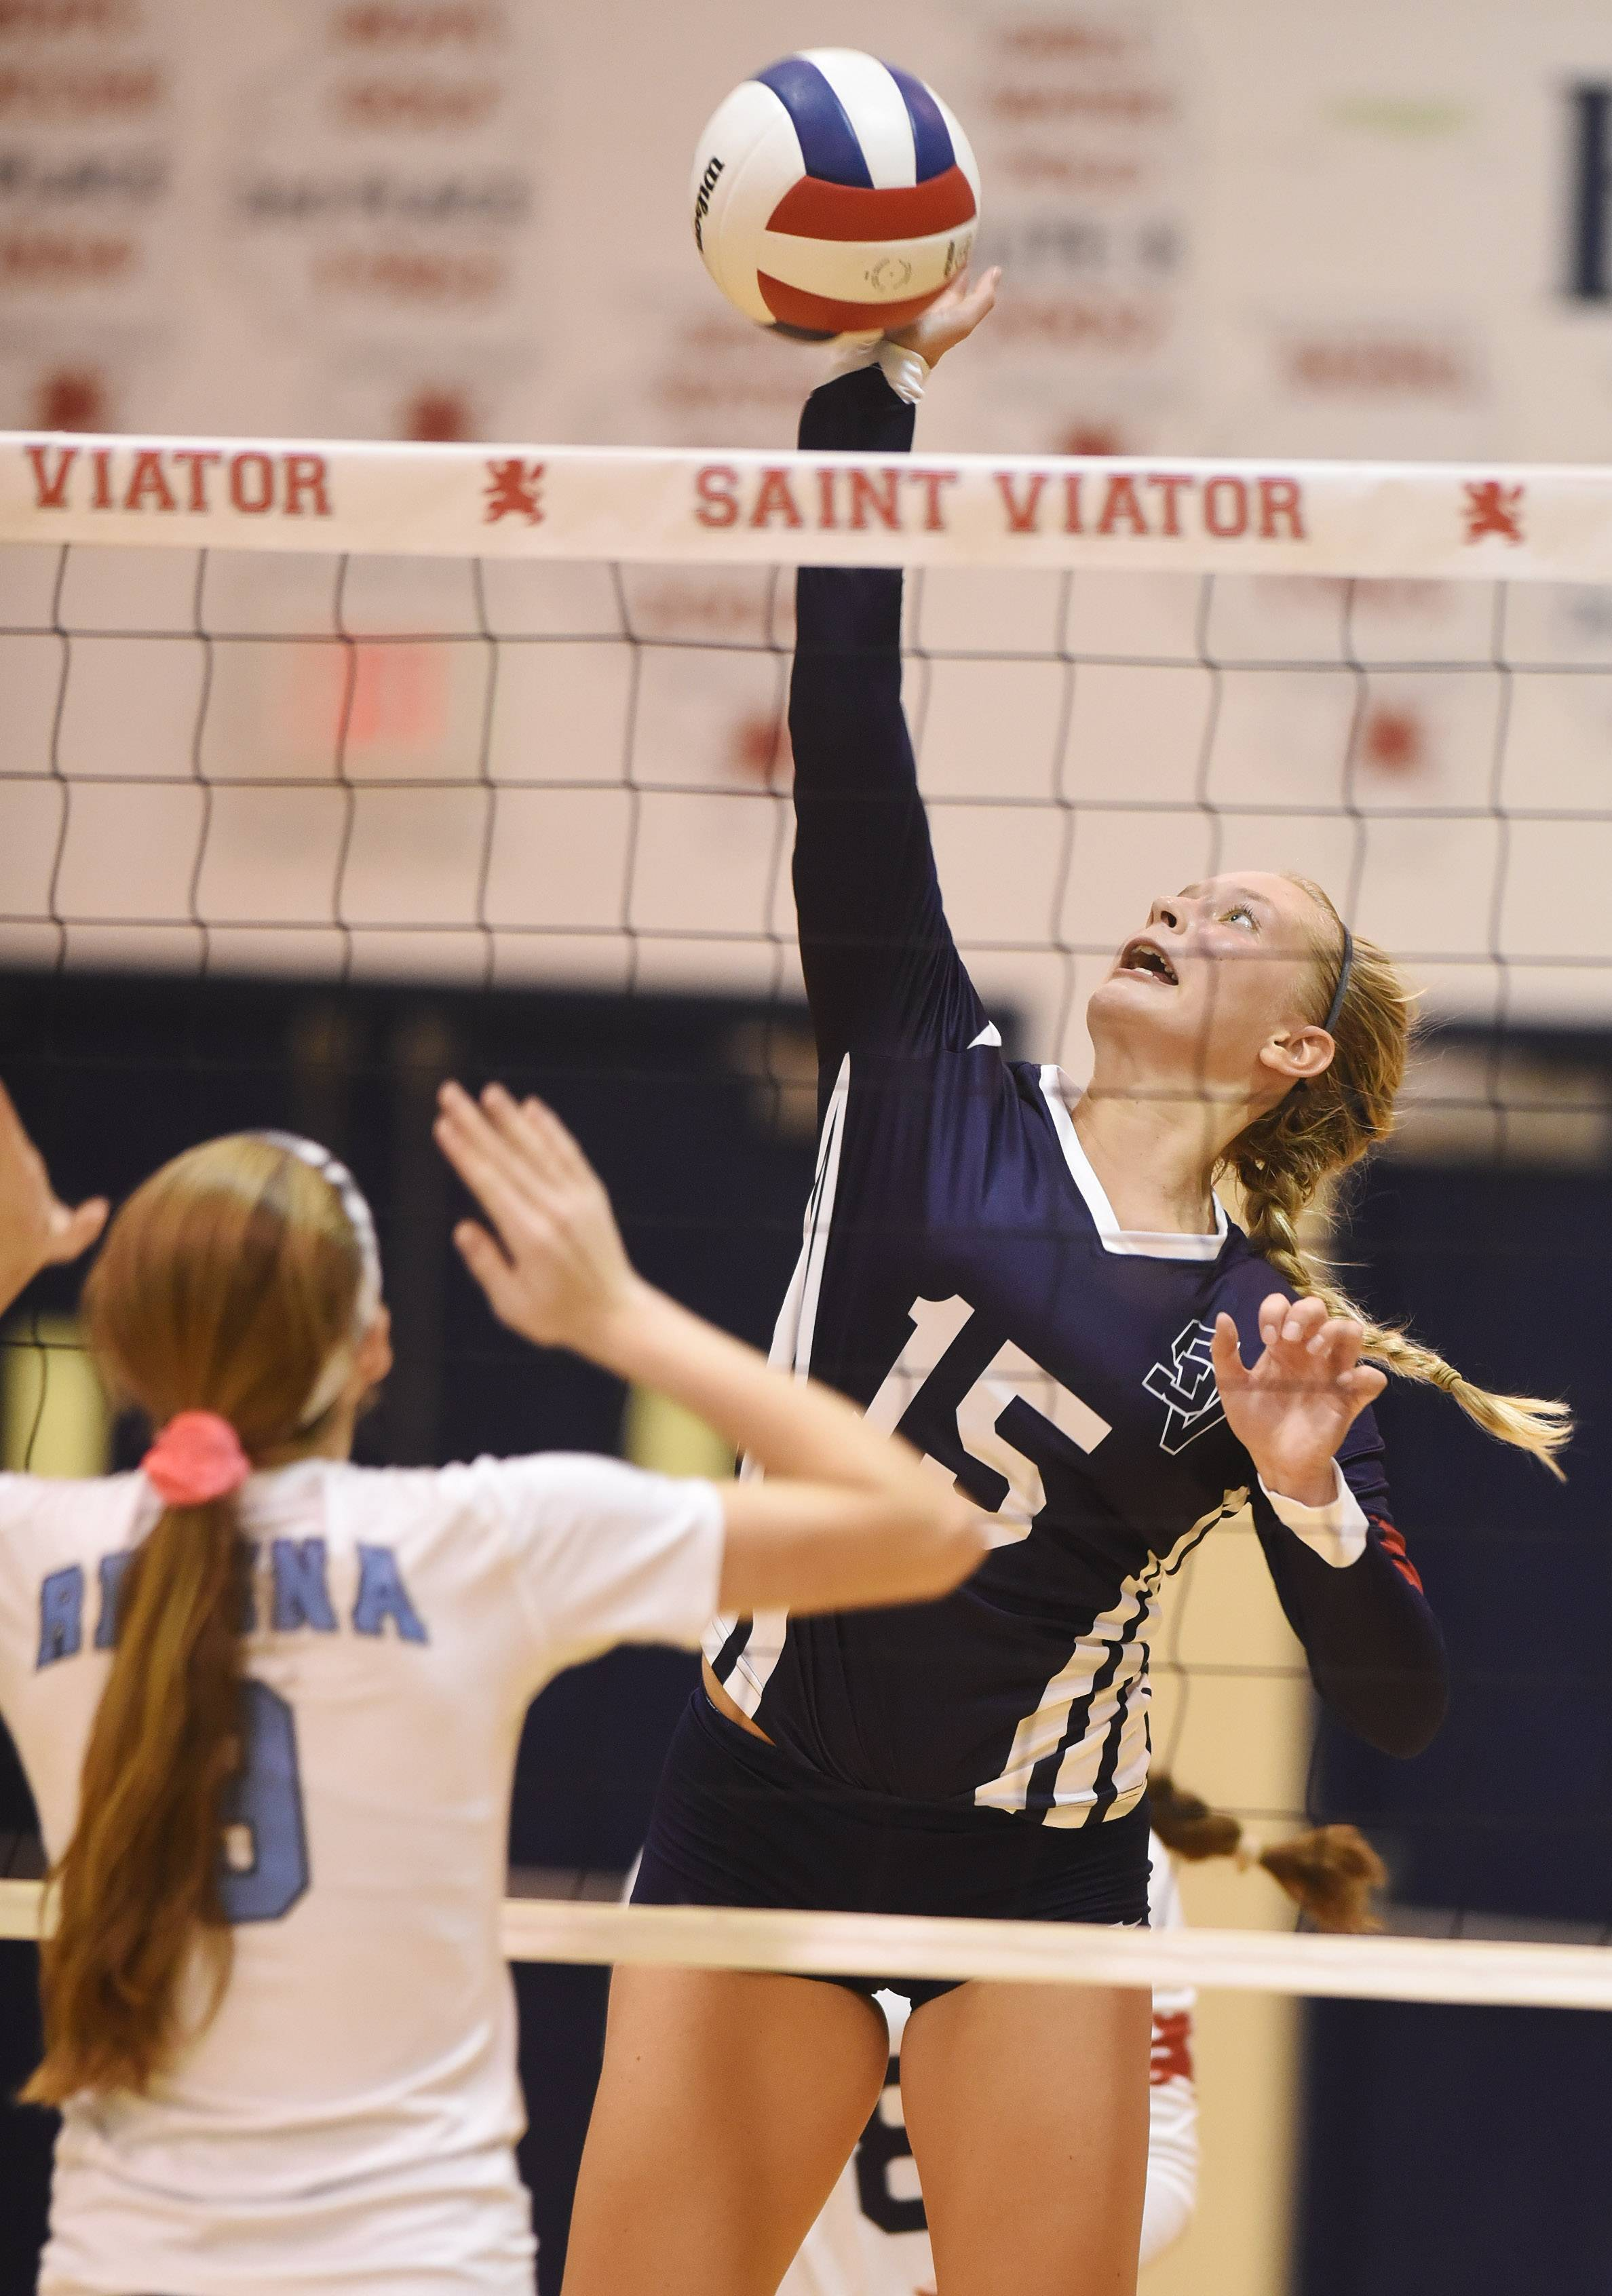 St. Viator's Carrie Leazer, right, leaps for a kill as Regina Dominican's Maddy Fox tries to block the ball at the net during Wednesday's match in Arlington Heights.